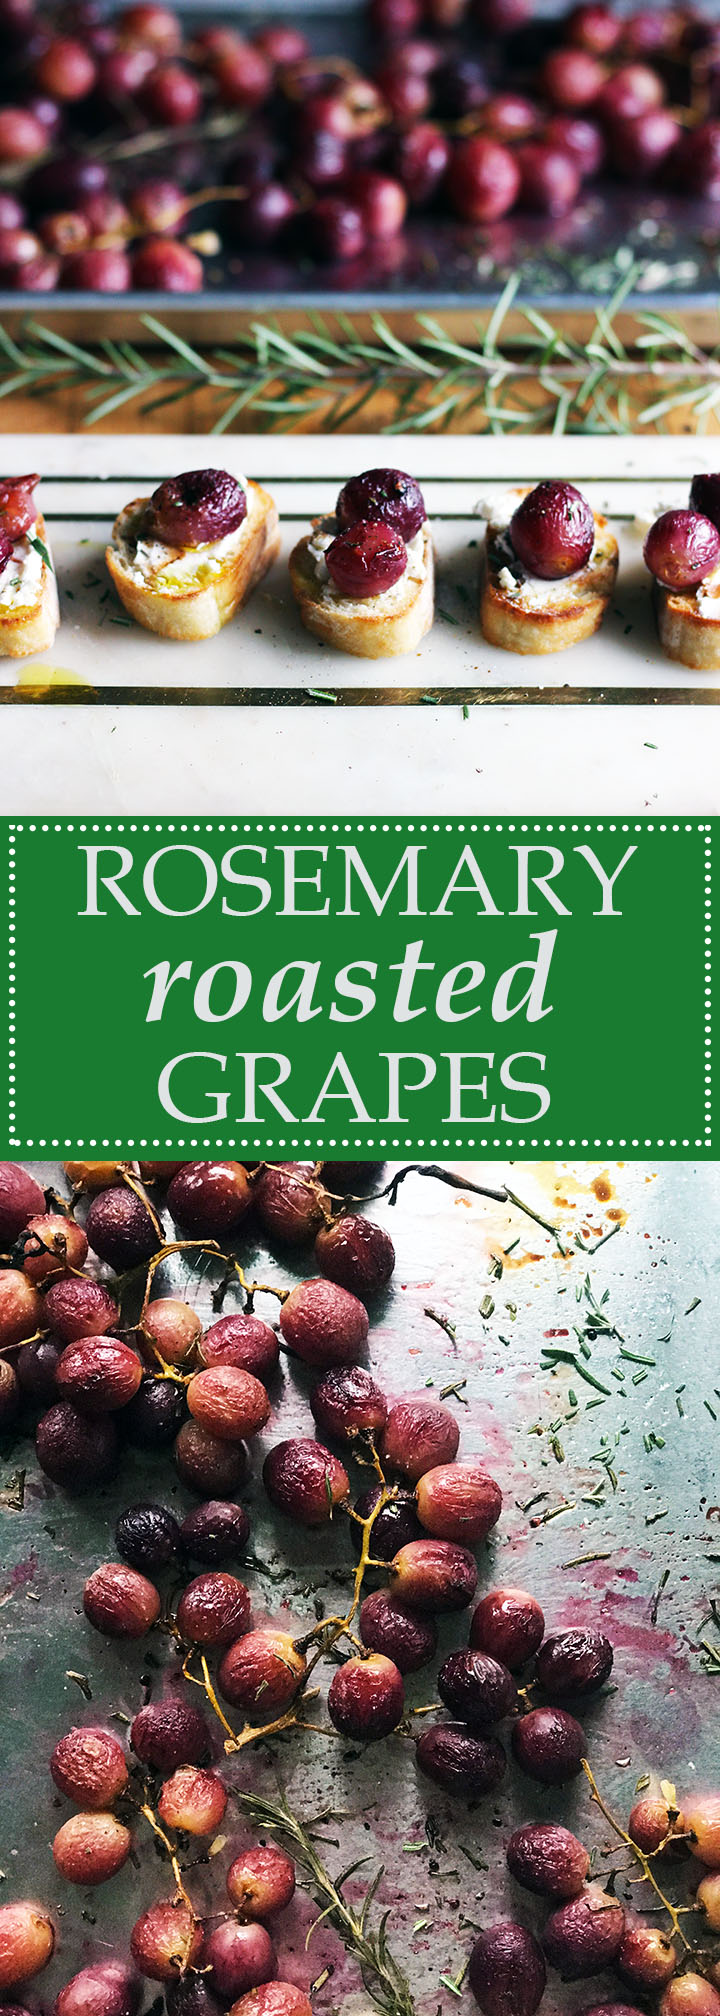 Rosemary Roasted Grapes   thetableofcontents.co